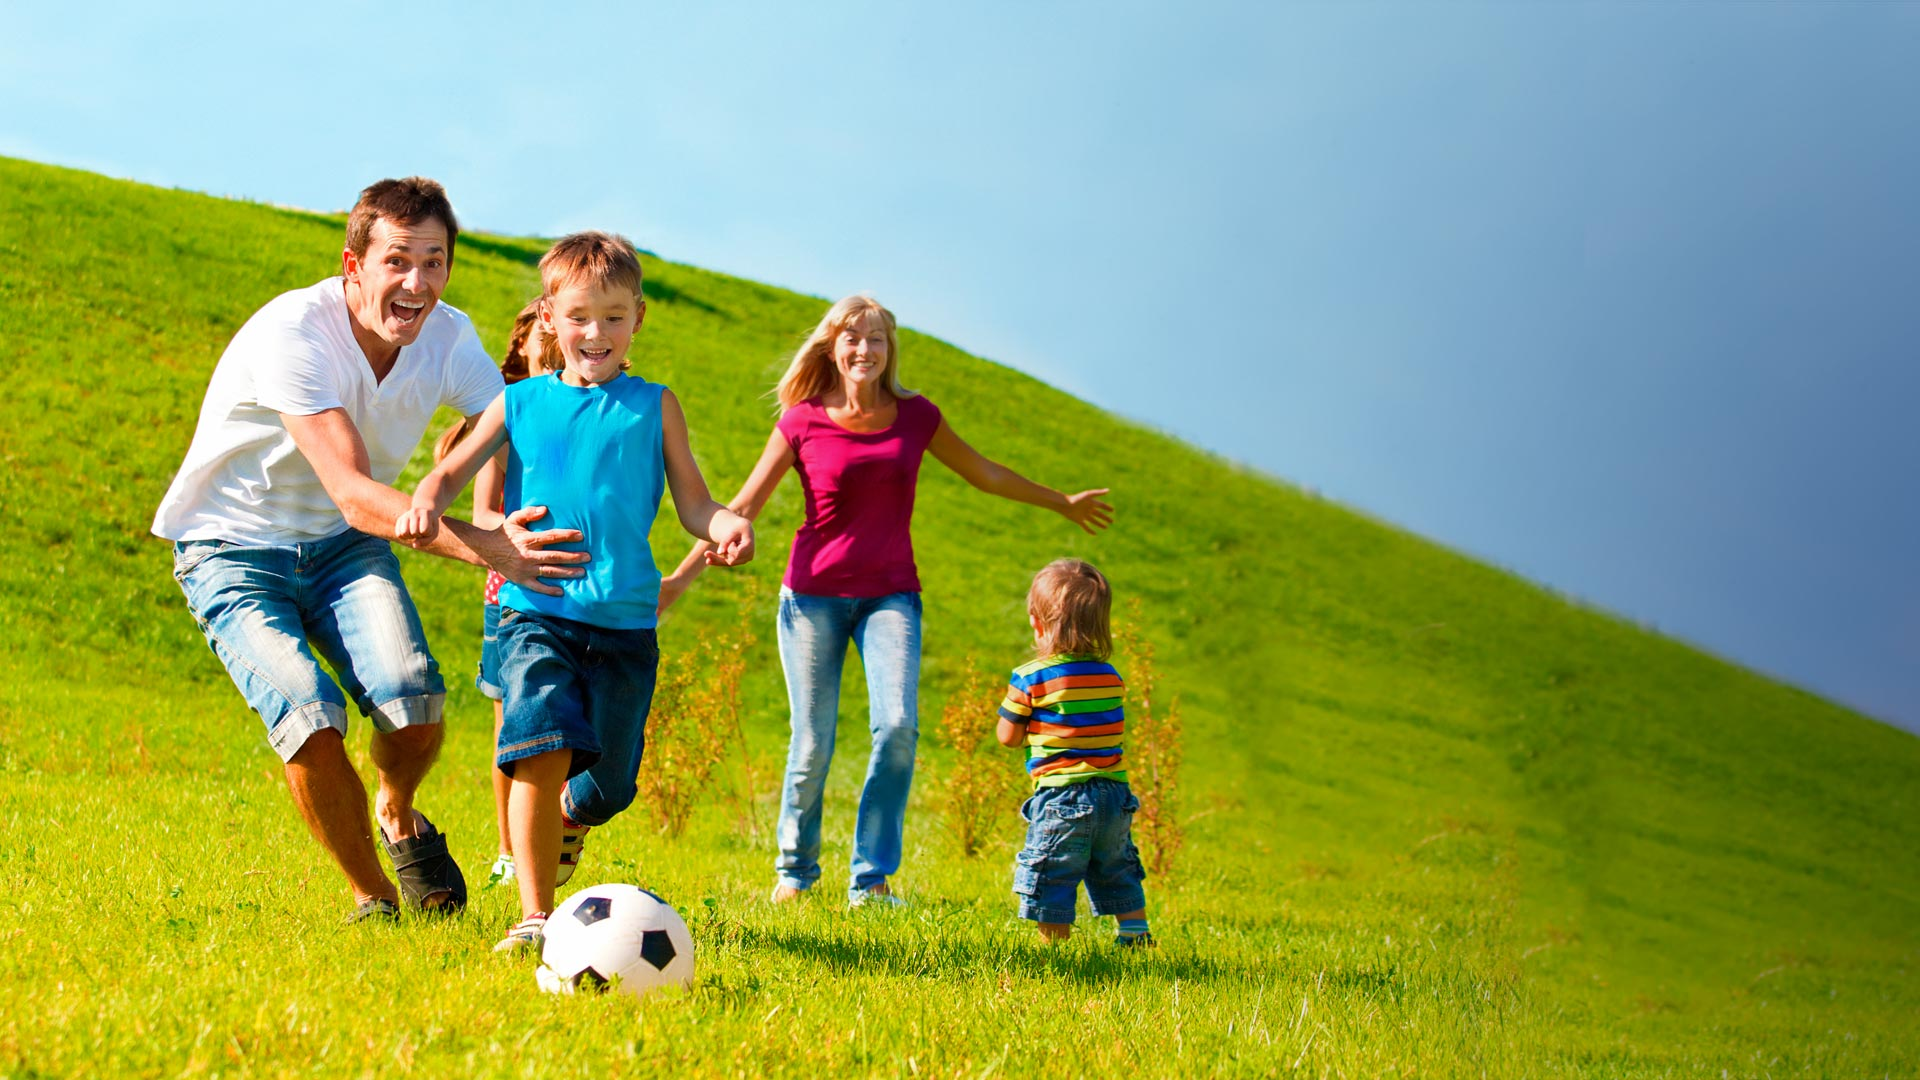 Family playing soccer in a green field with hills behind them